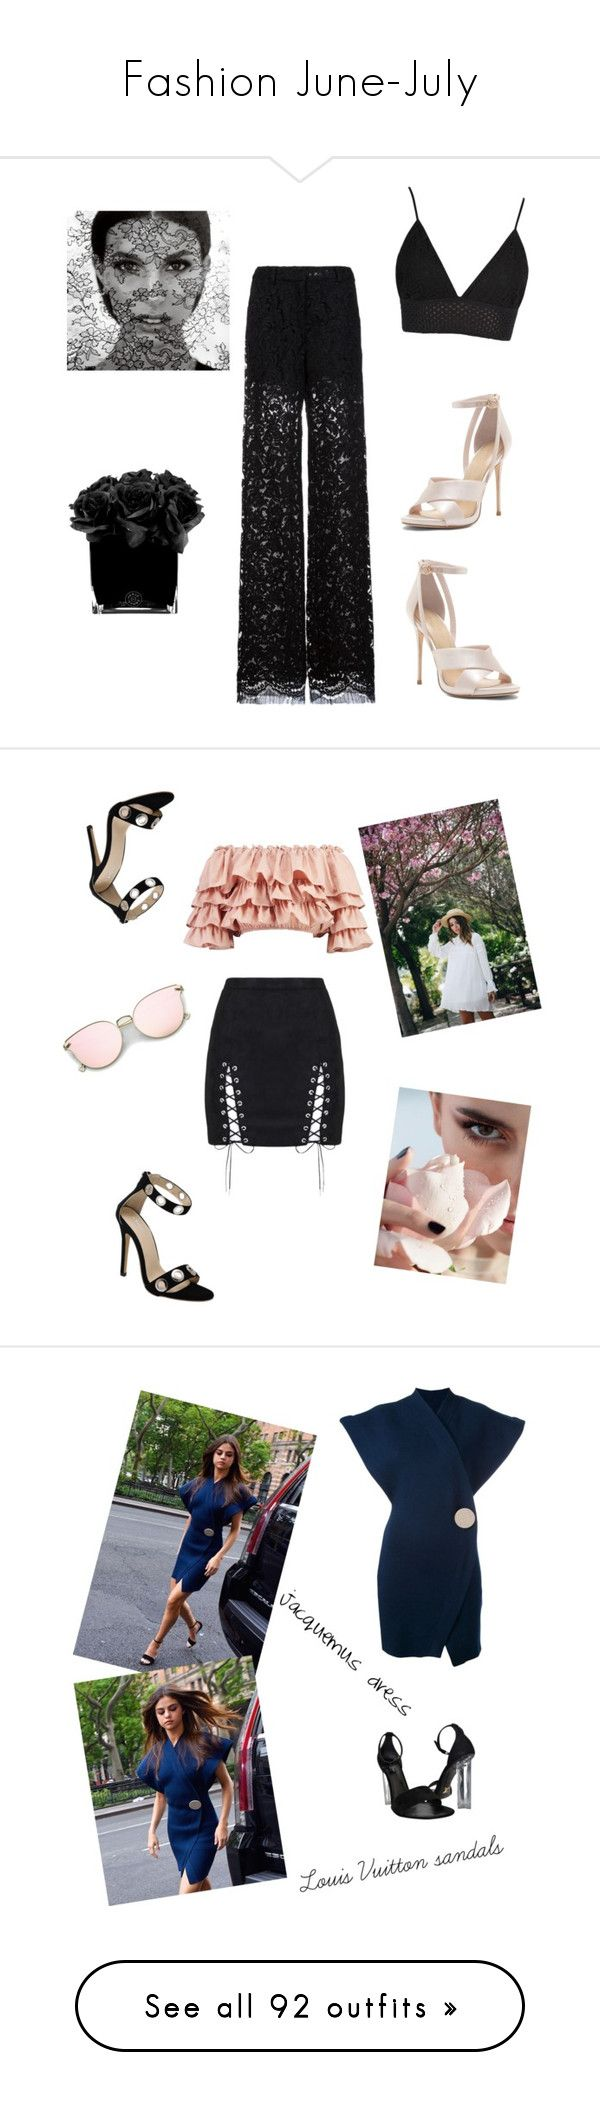 """""""Fashion June-July"""" by arina-bianca ❤ liked on Polyvore featuring ADAM, Hervé Gambs, Boohoo, Louis Vuitton, Kendall + Kylie, Emy Mack, Maria Francesca Pepe, Dolce&Gabbana, Levi's and Victoria, Victoria Beckham"""